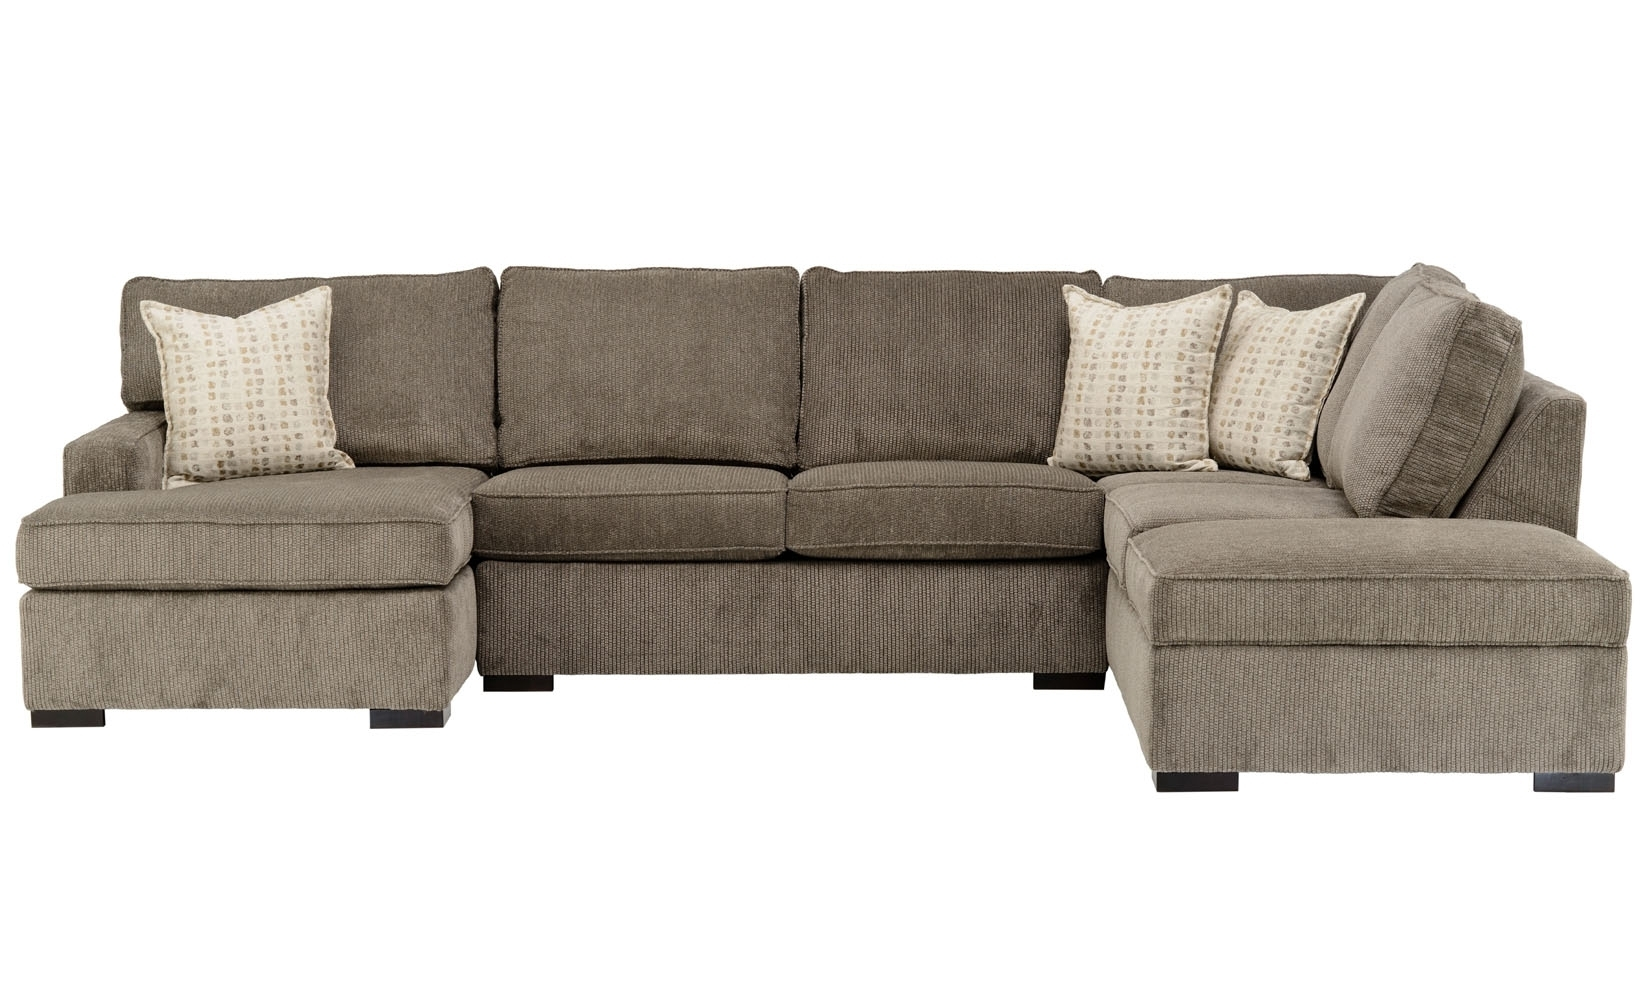 Raphael Sectional | Schneiderman's Furniture Minneapolis + St. Paul intended for Minneapolis Sectional Sofas (Image 5 of 10)